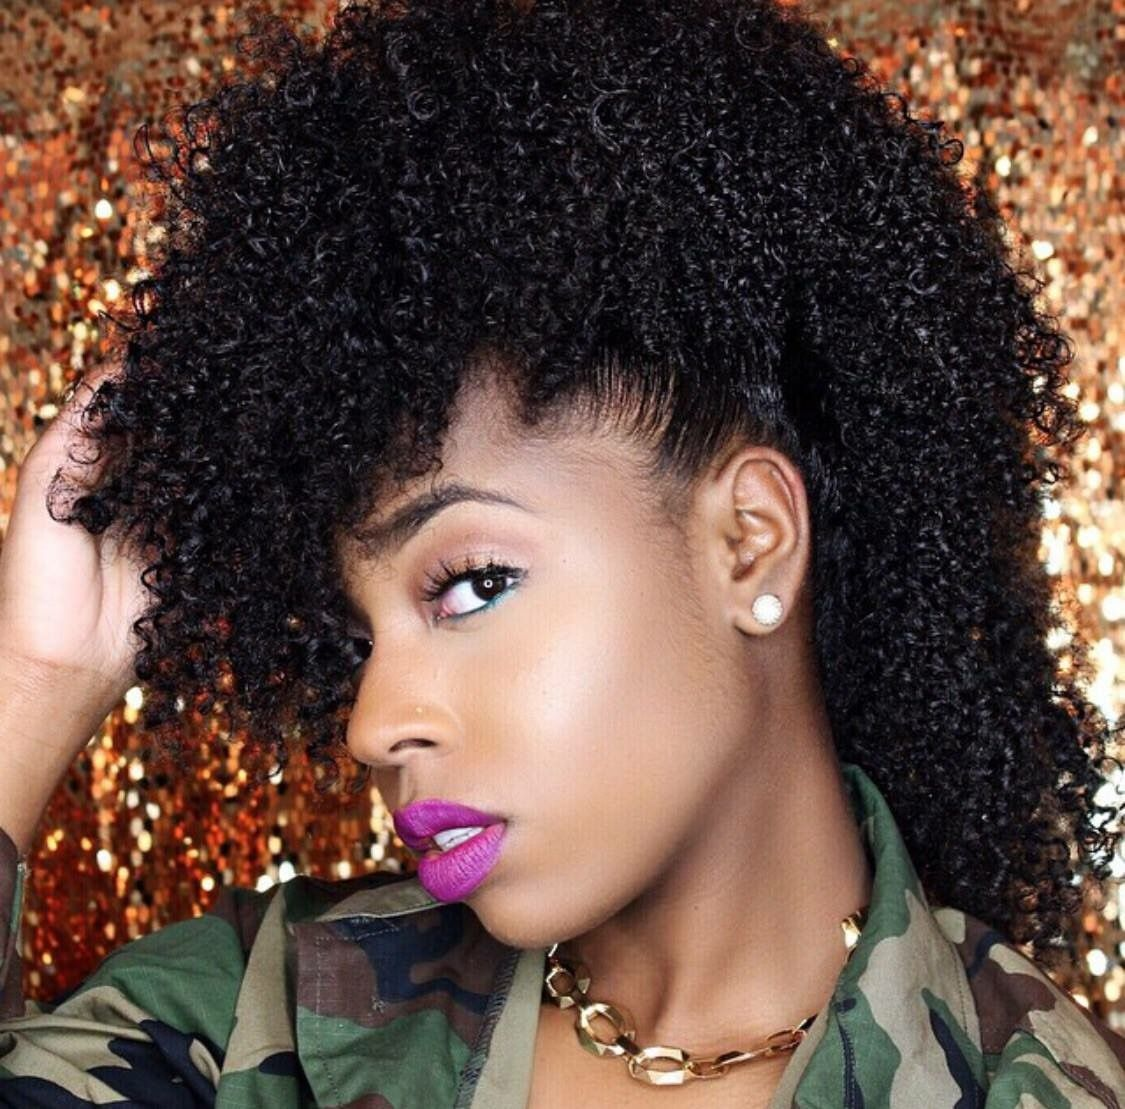 Pin by kay shelton on curls curls curls pinterest natural hair